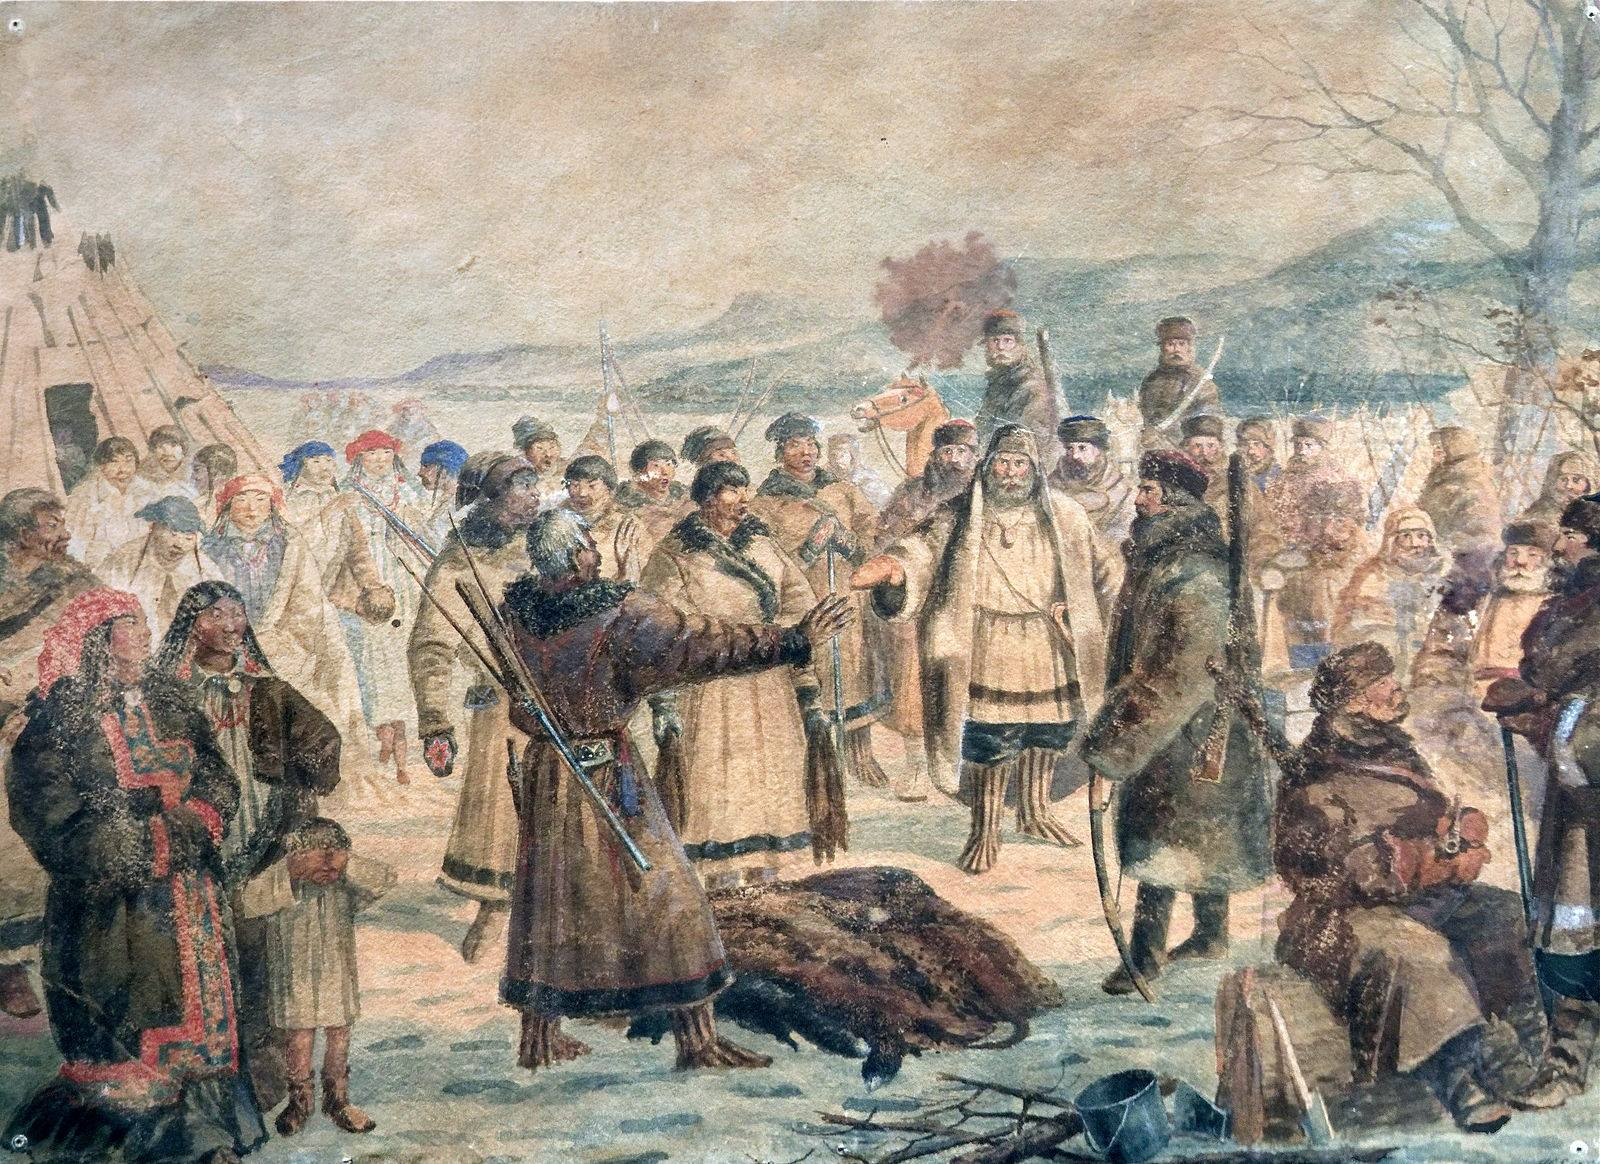 Cossacks collect fur taxes from Siberian tribe.